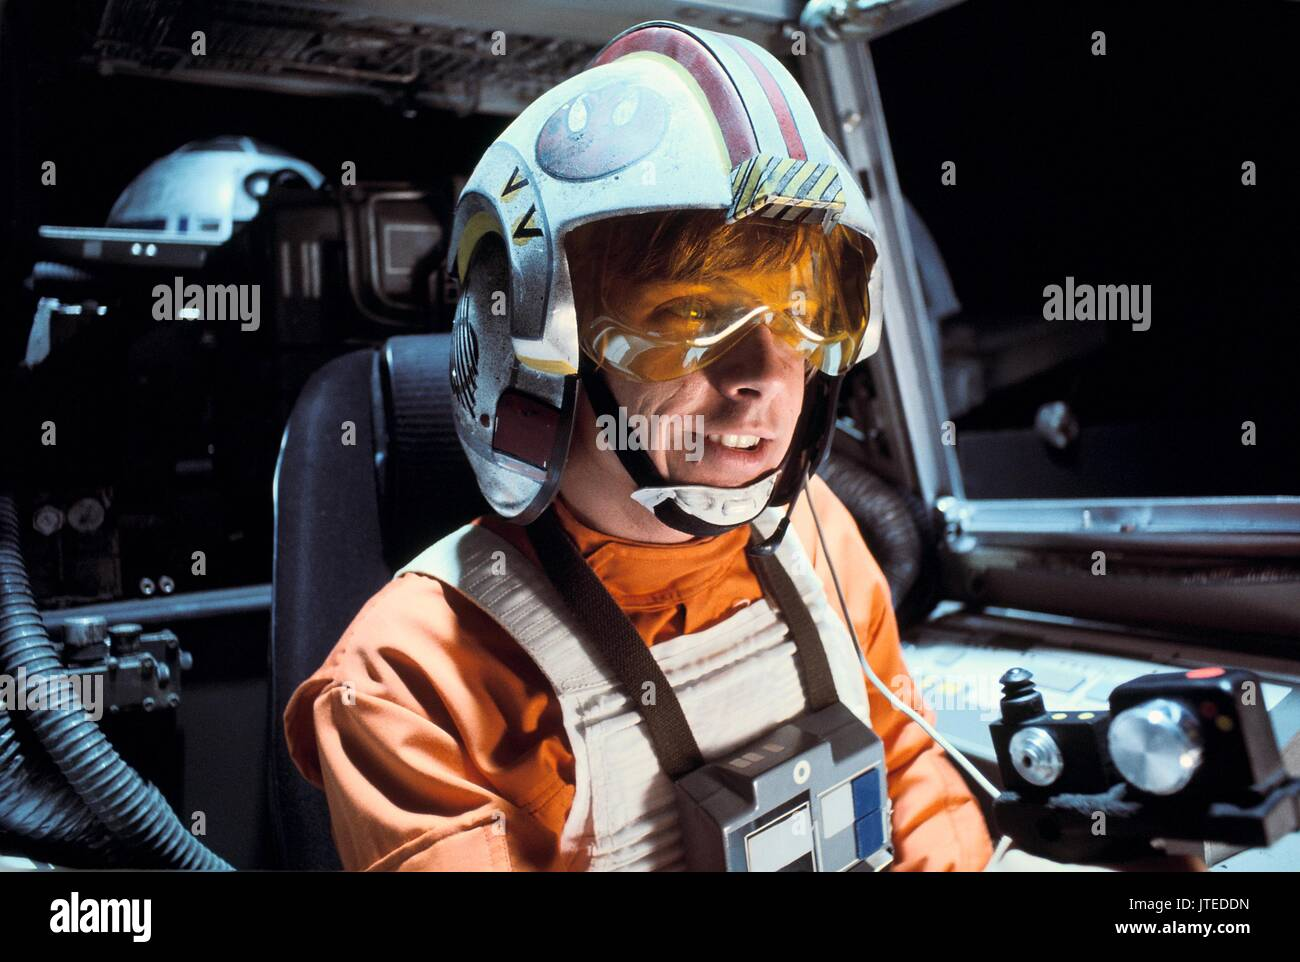 Mark Hamill Star Wars Star Wars Episode Iv A New Hope 1977 Stock Photo Alamy